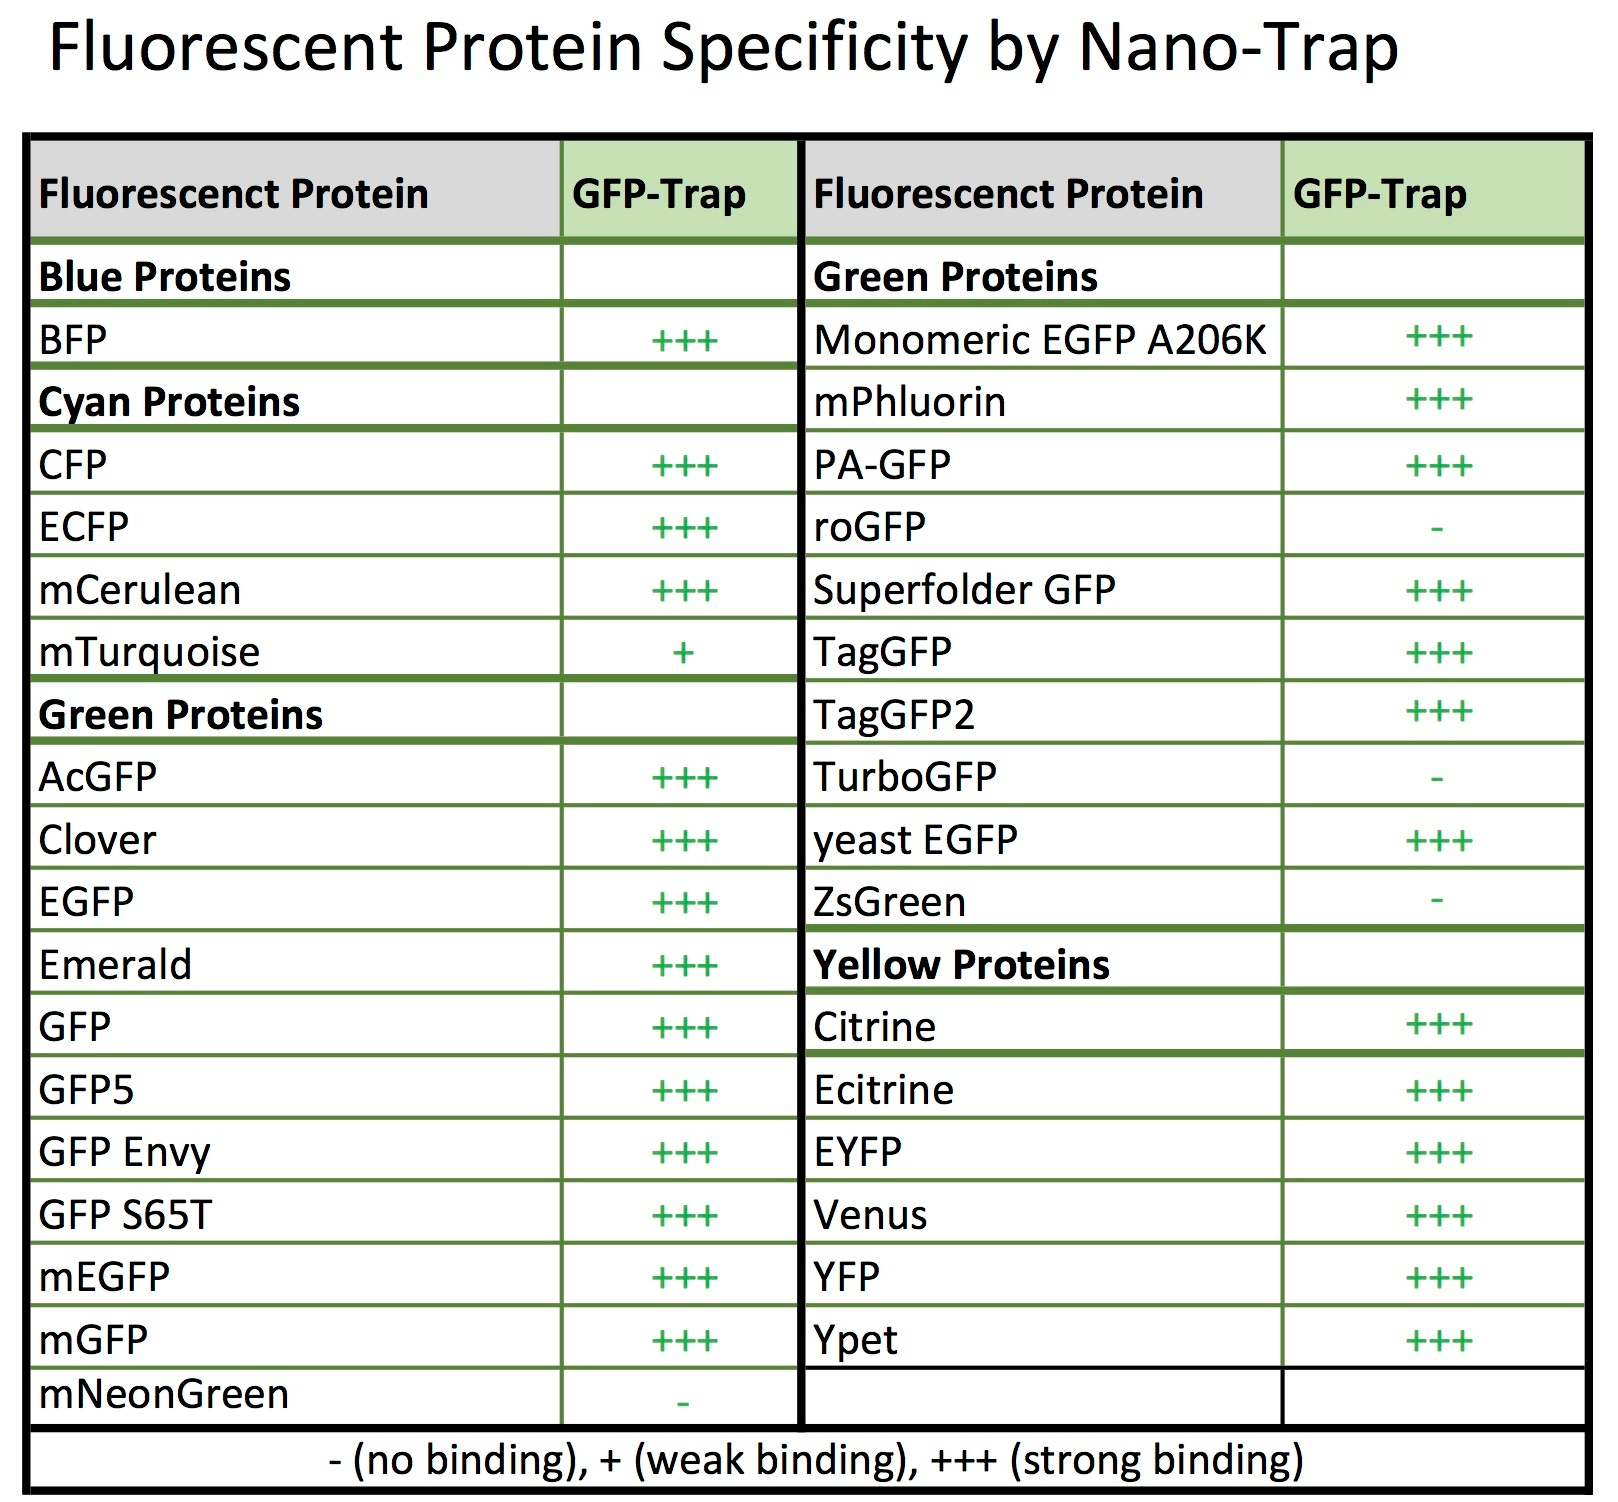 FP Specificity by GFP-Trap.jpg